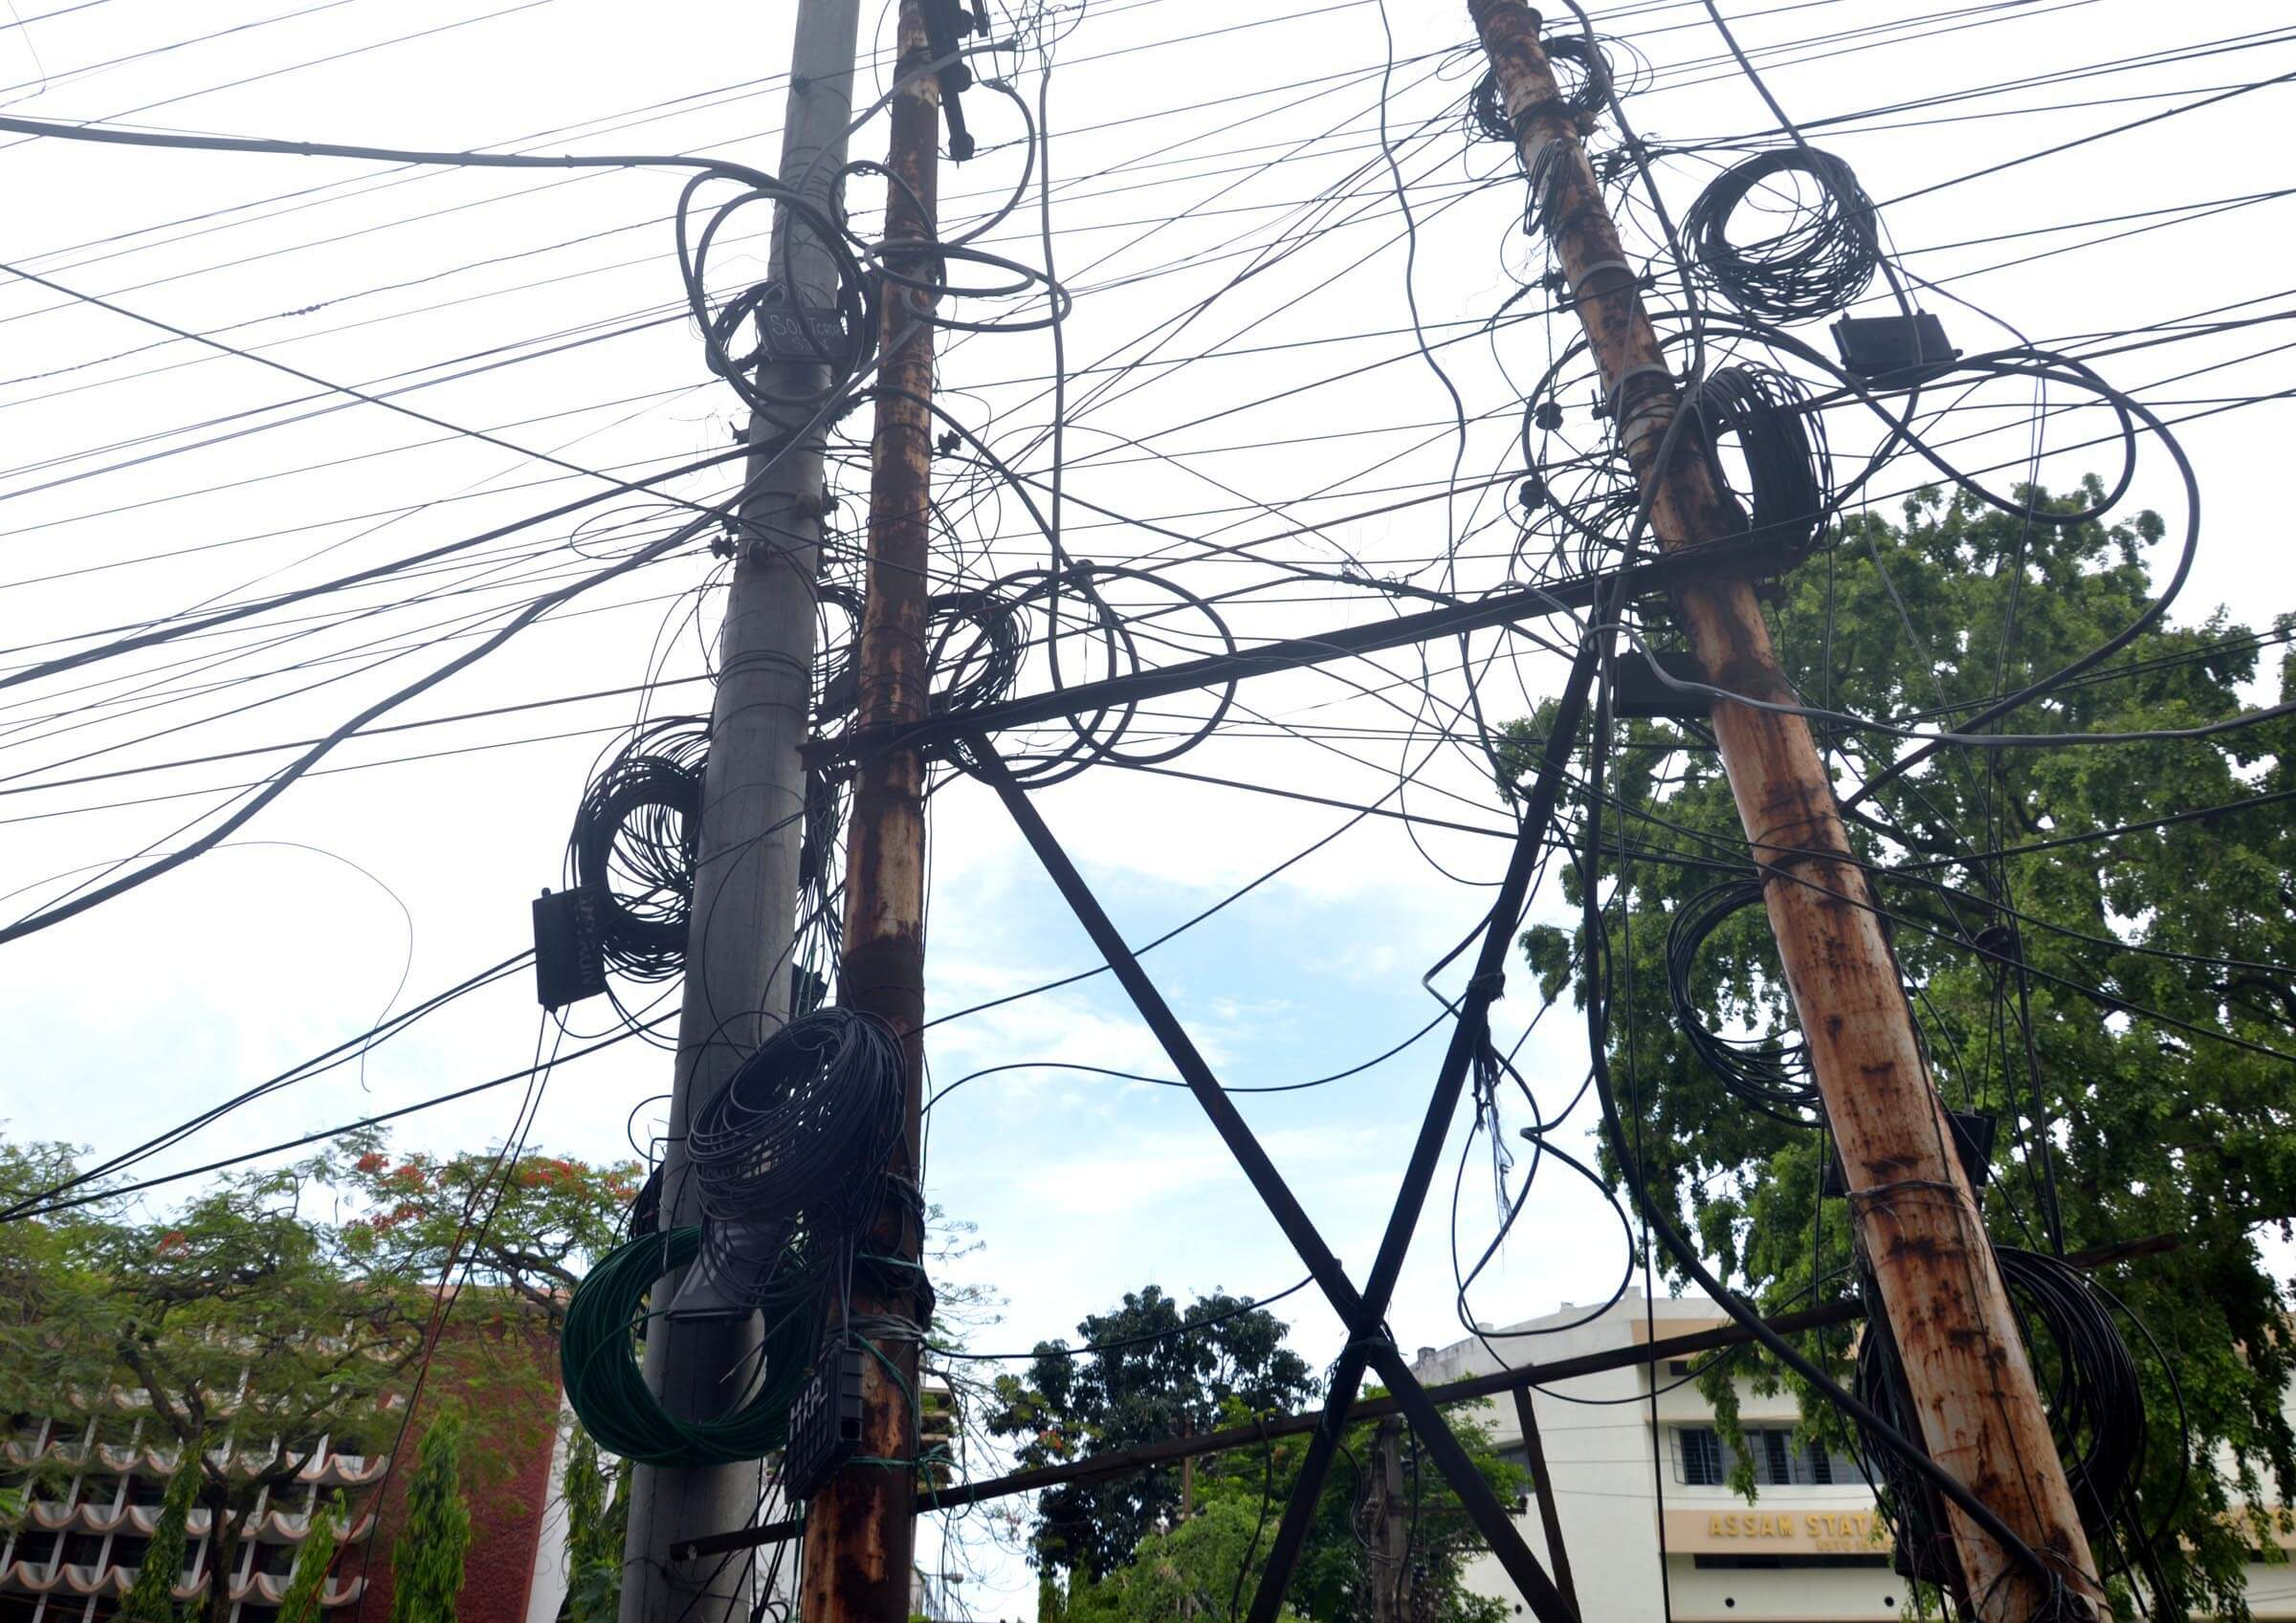 Beware of live wires and exposed transformers!